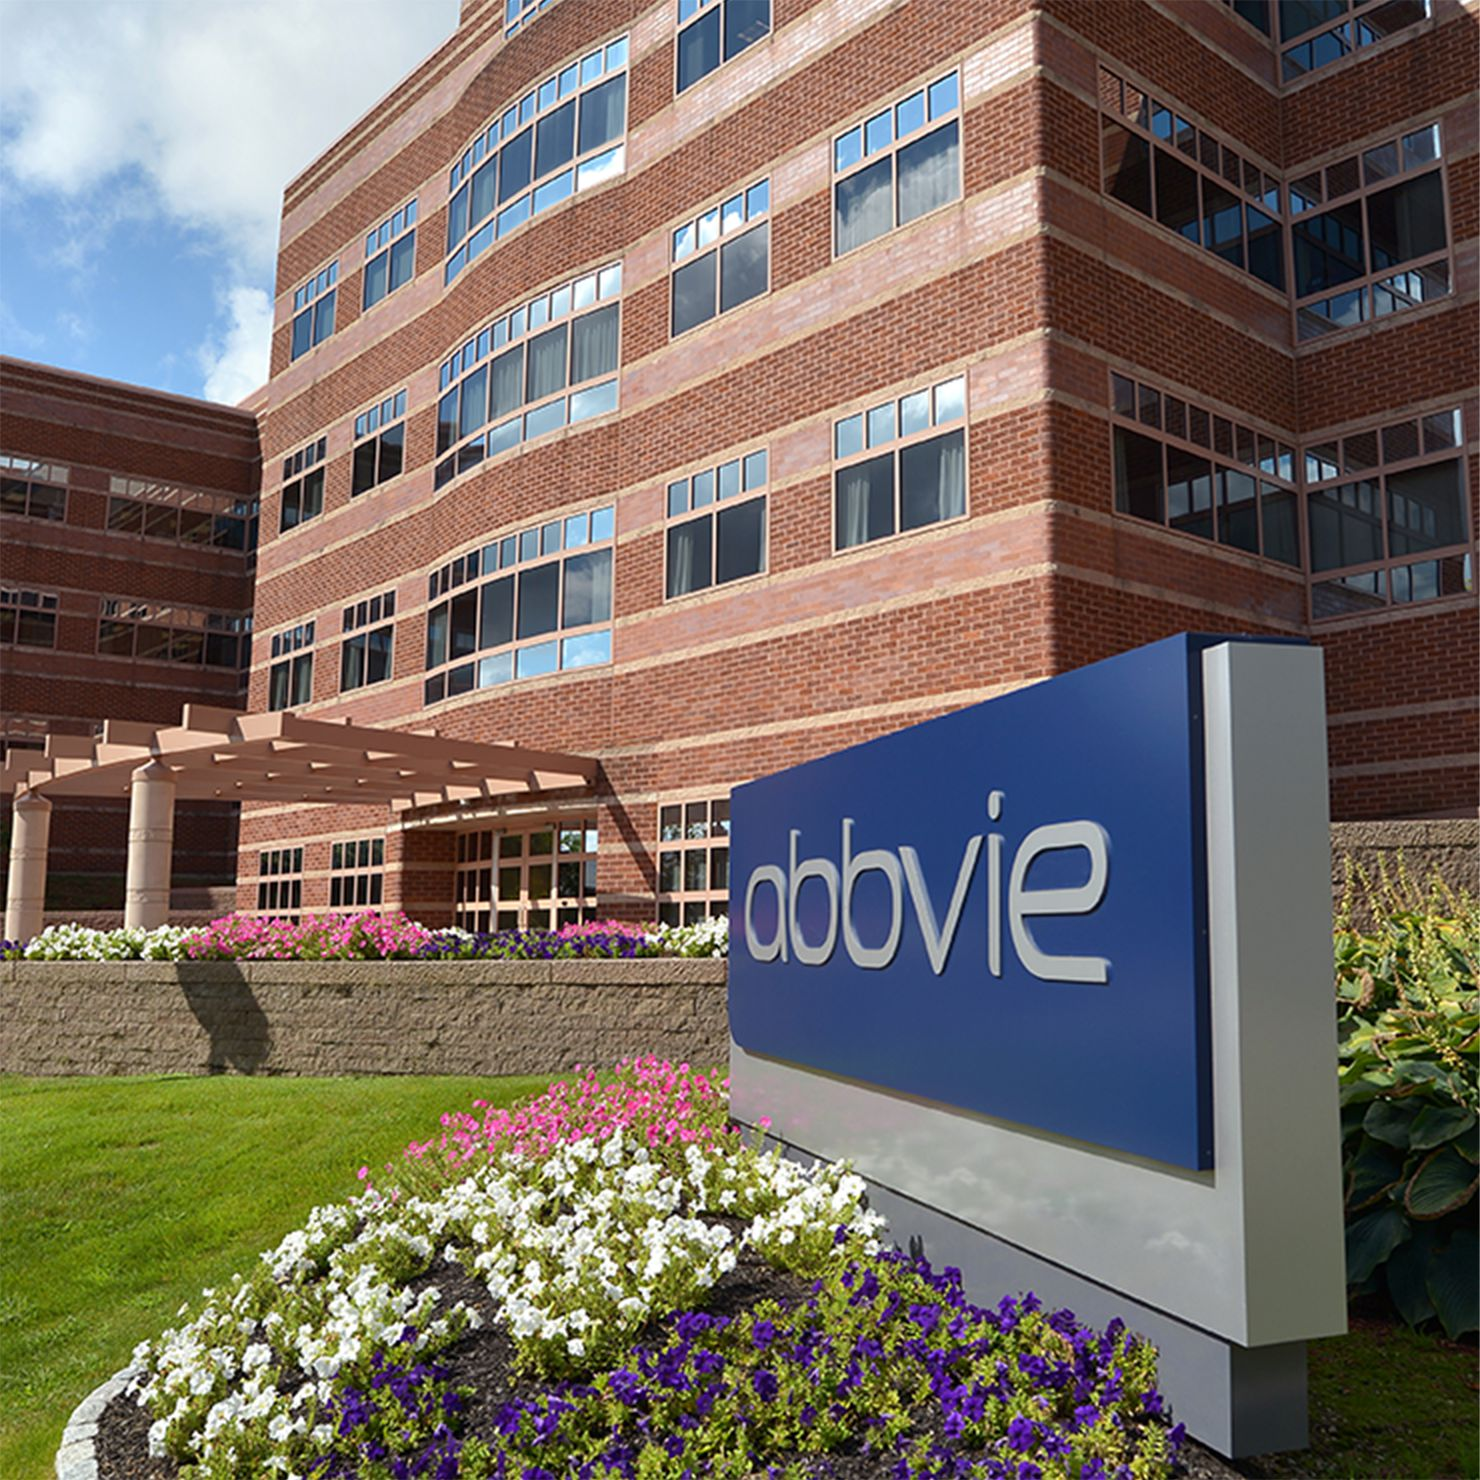 An AbbVie bioresearch center building.